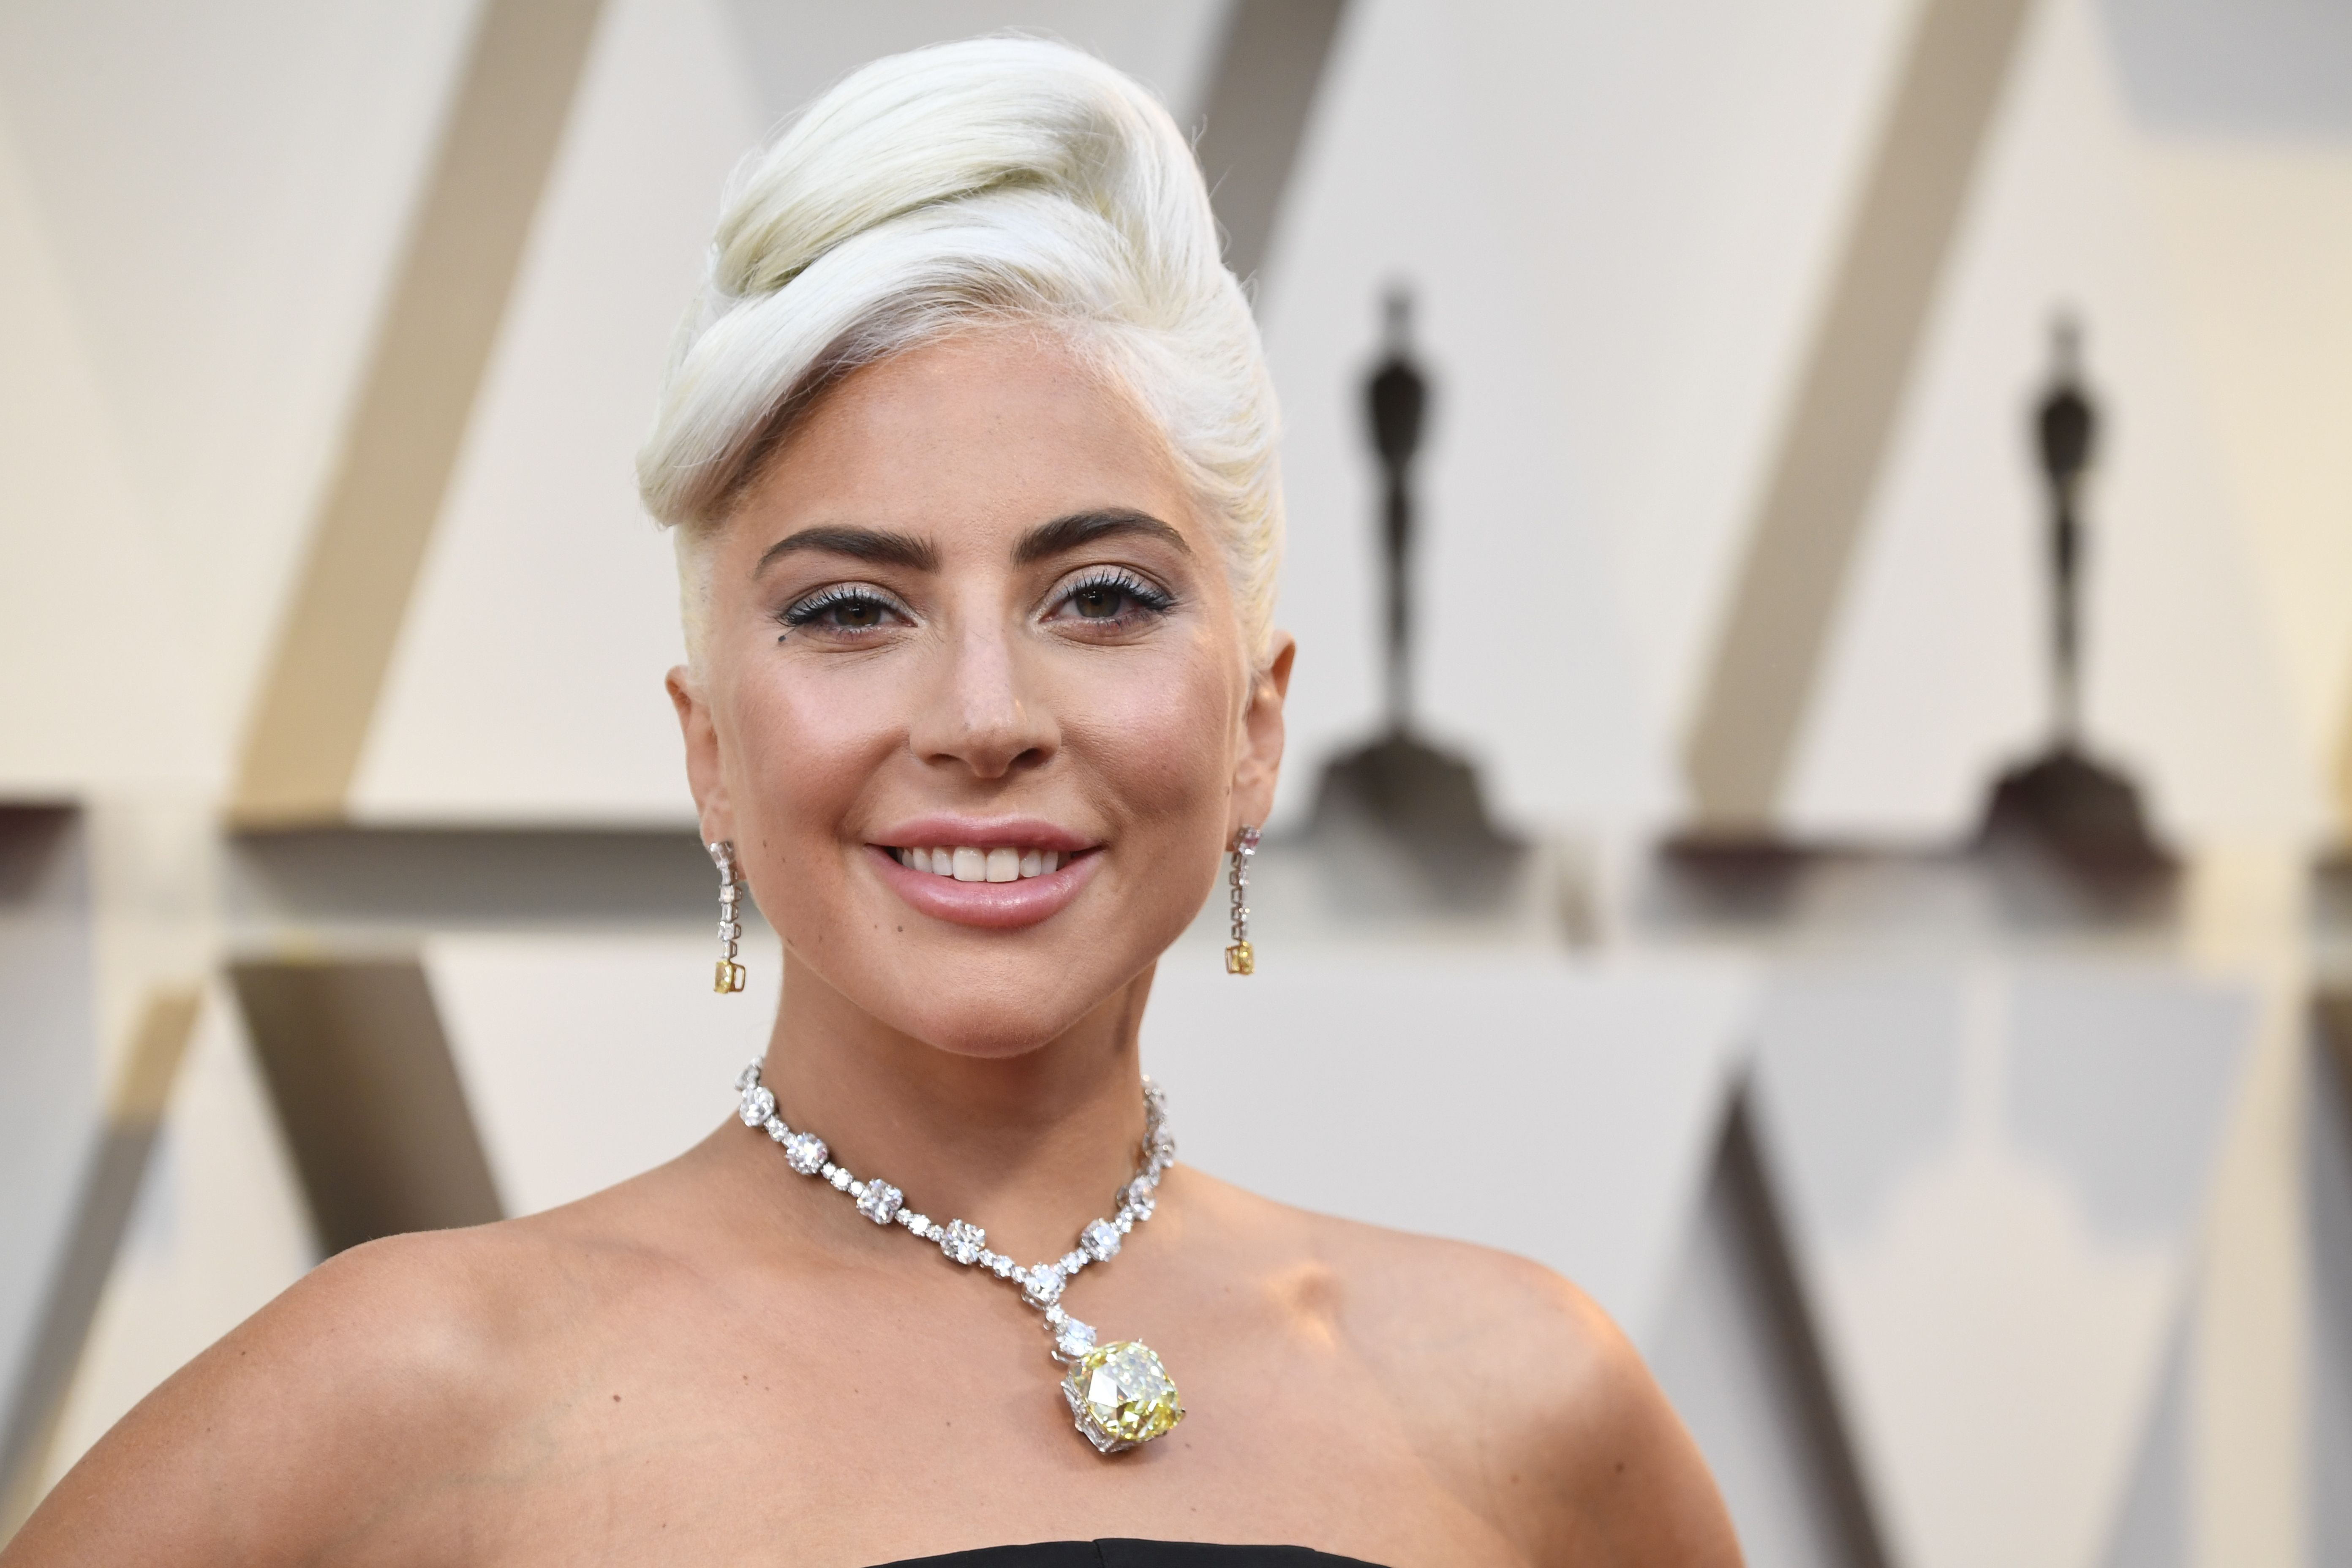 Lady Gaga attends the 91st Annual Academy Awards at Hollywood and Highland on February 24, 2019 in Hollywood, California | Photo: Getty Images